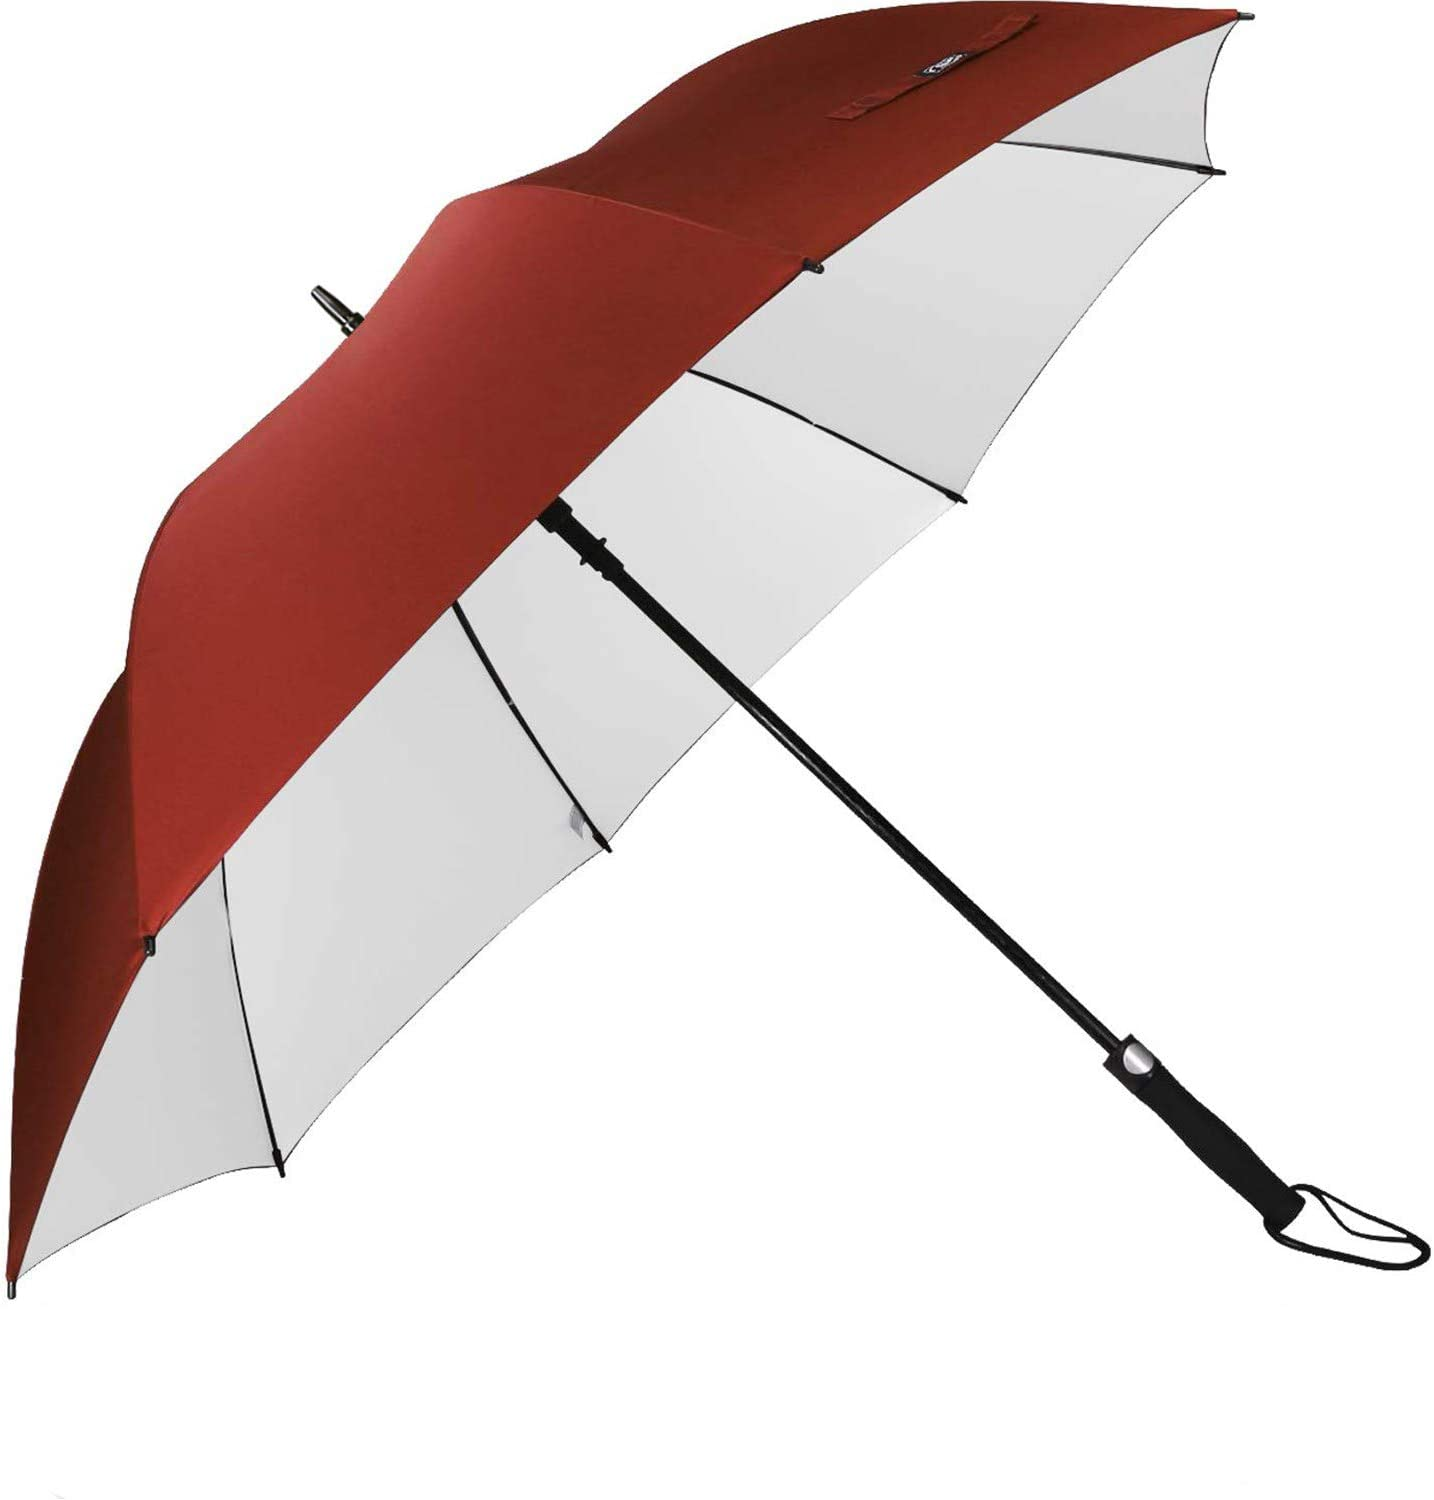 G4Free 62 Inch Windproof UV Protection Golf Umbrella Extra Large Silver Coated Automatic Open Silver Coated Stick Umbrella